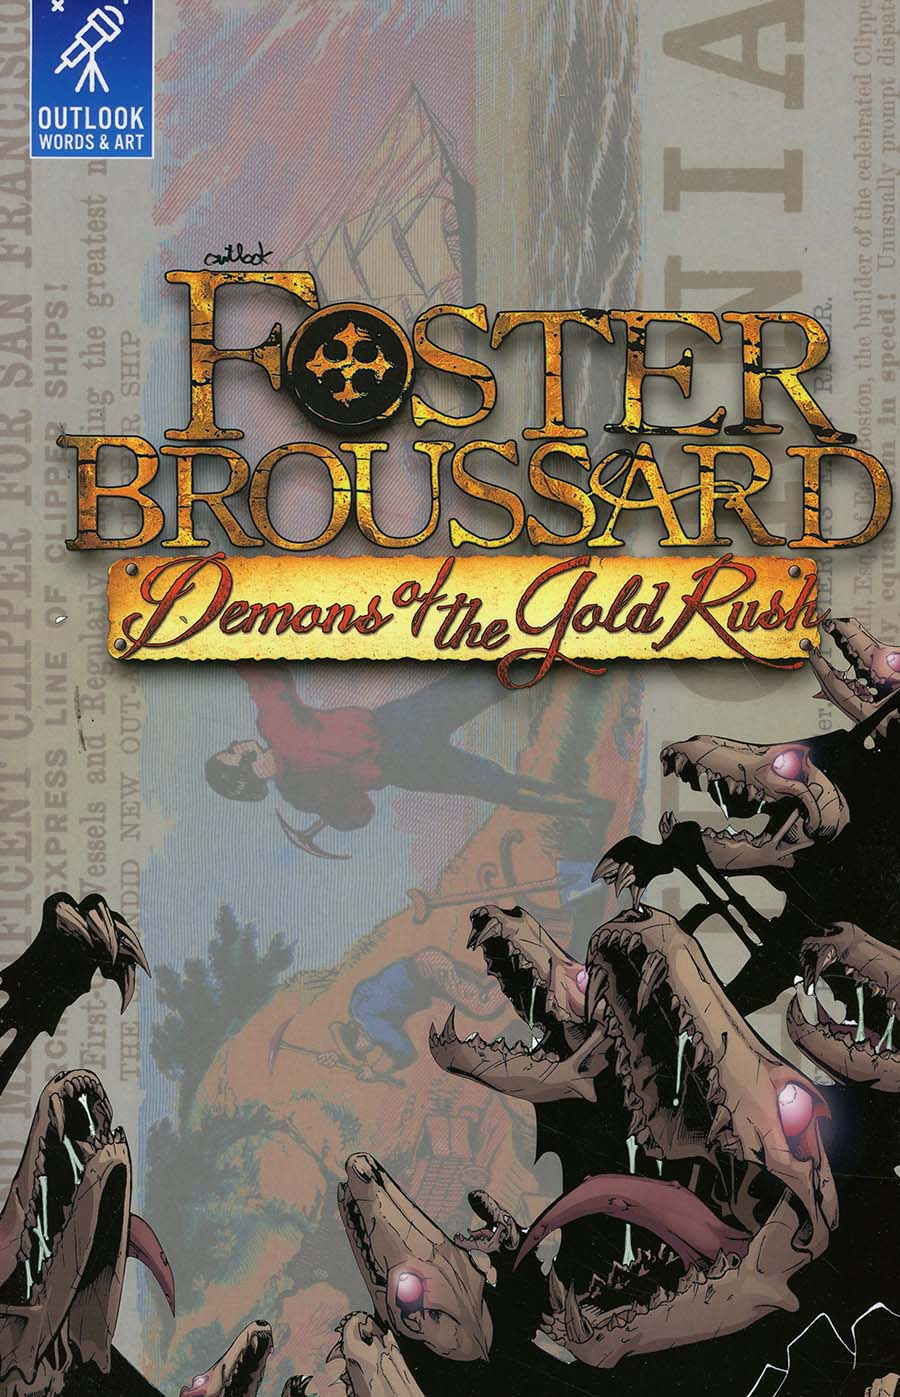 Foster Broussard Demons Of The Gold Rush TP